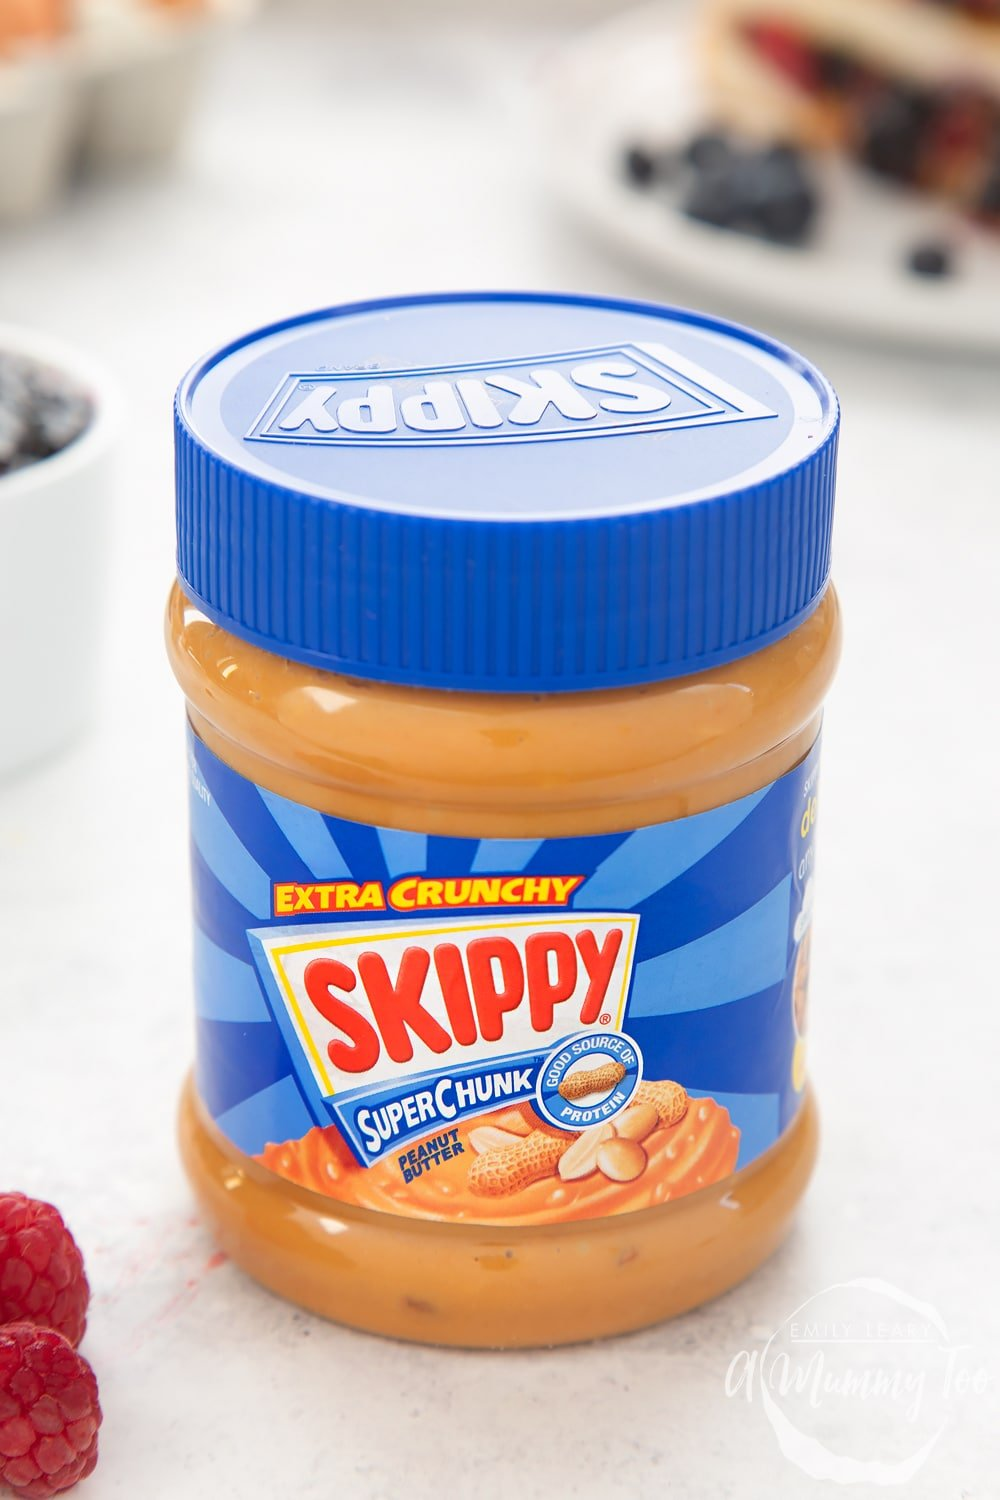 Skippy SuperChunk Extra Crunchy peanut butter